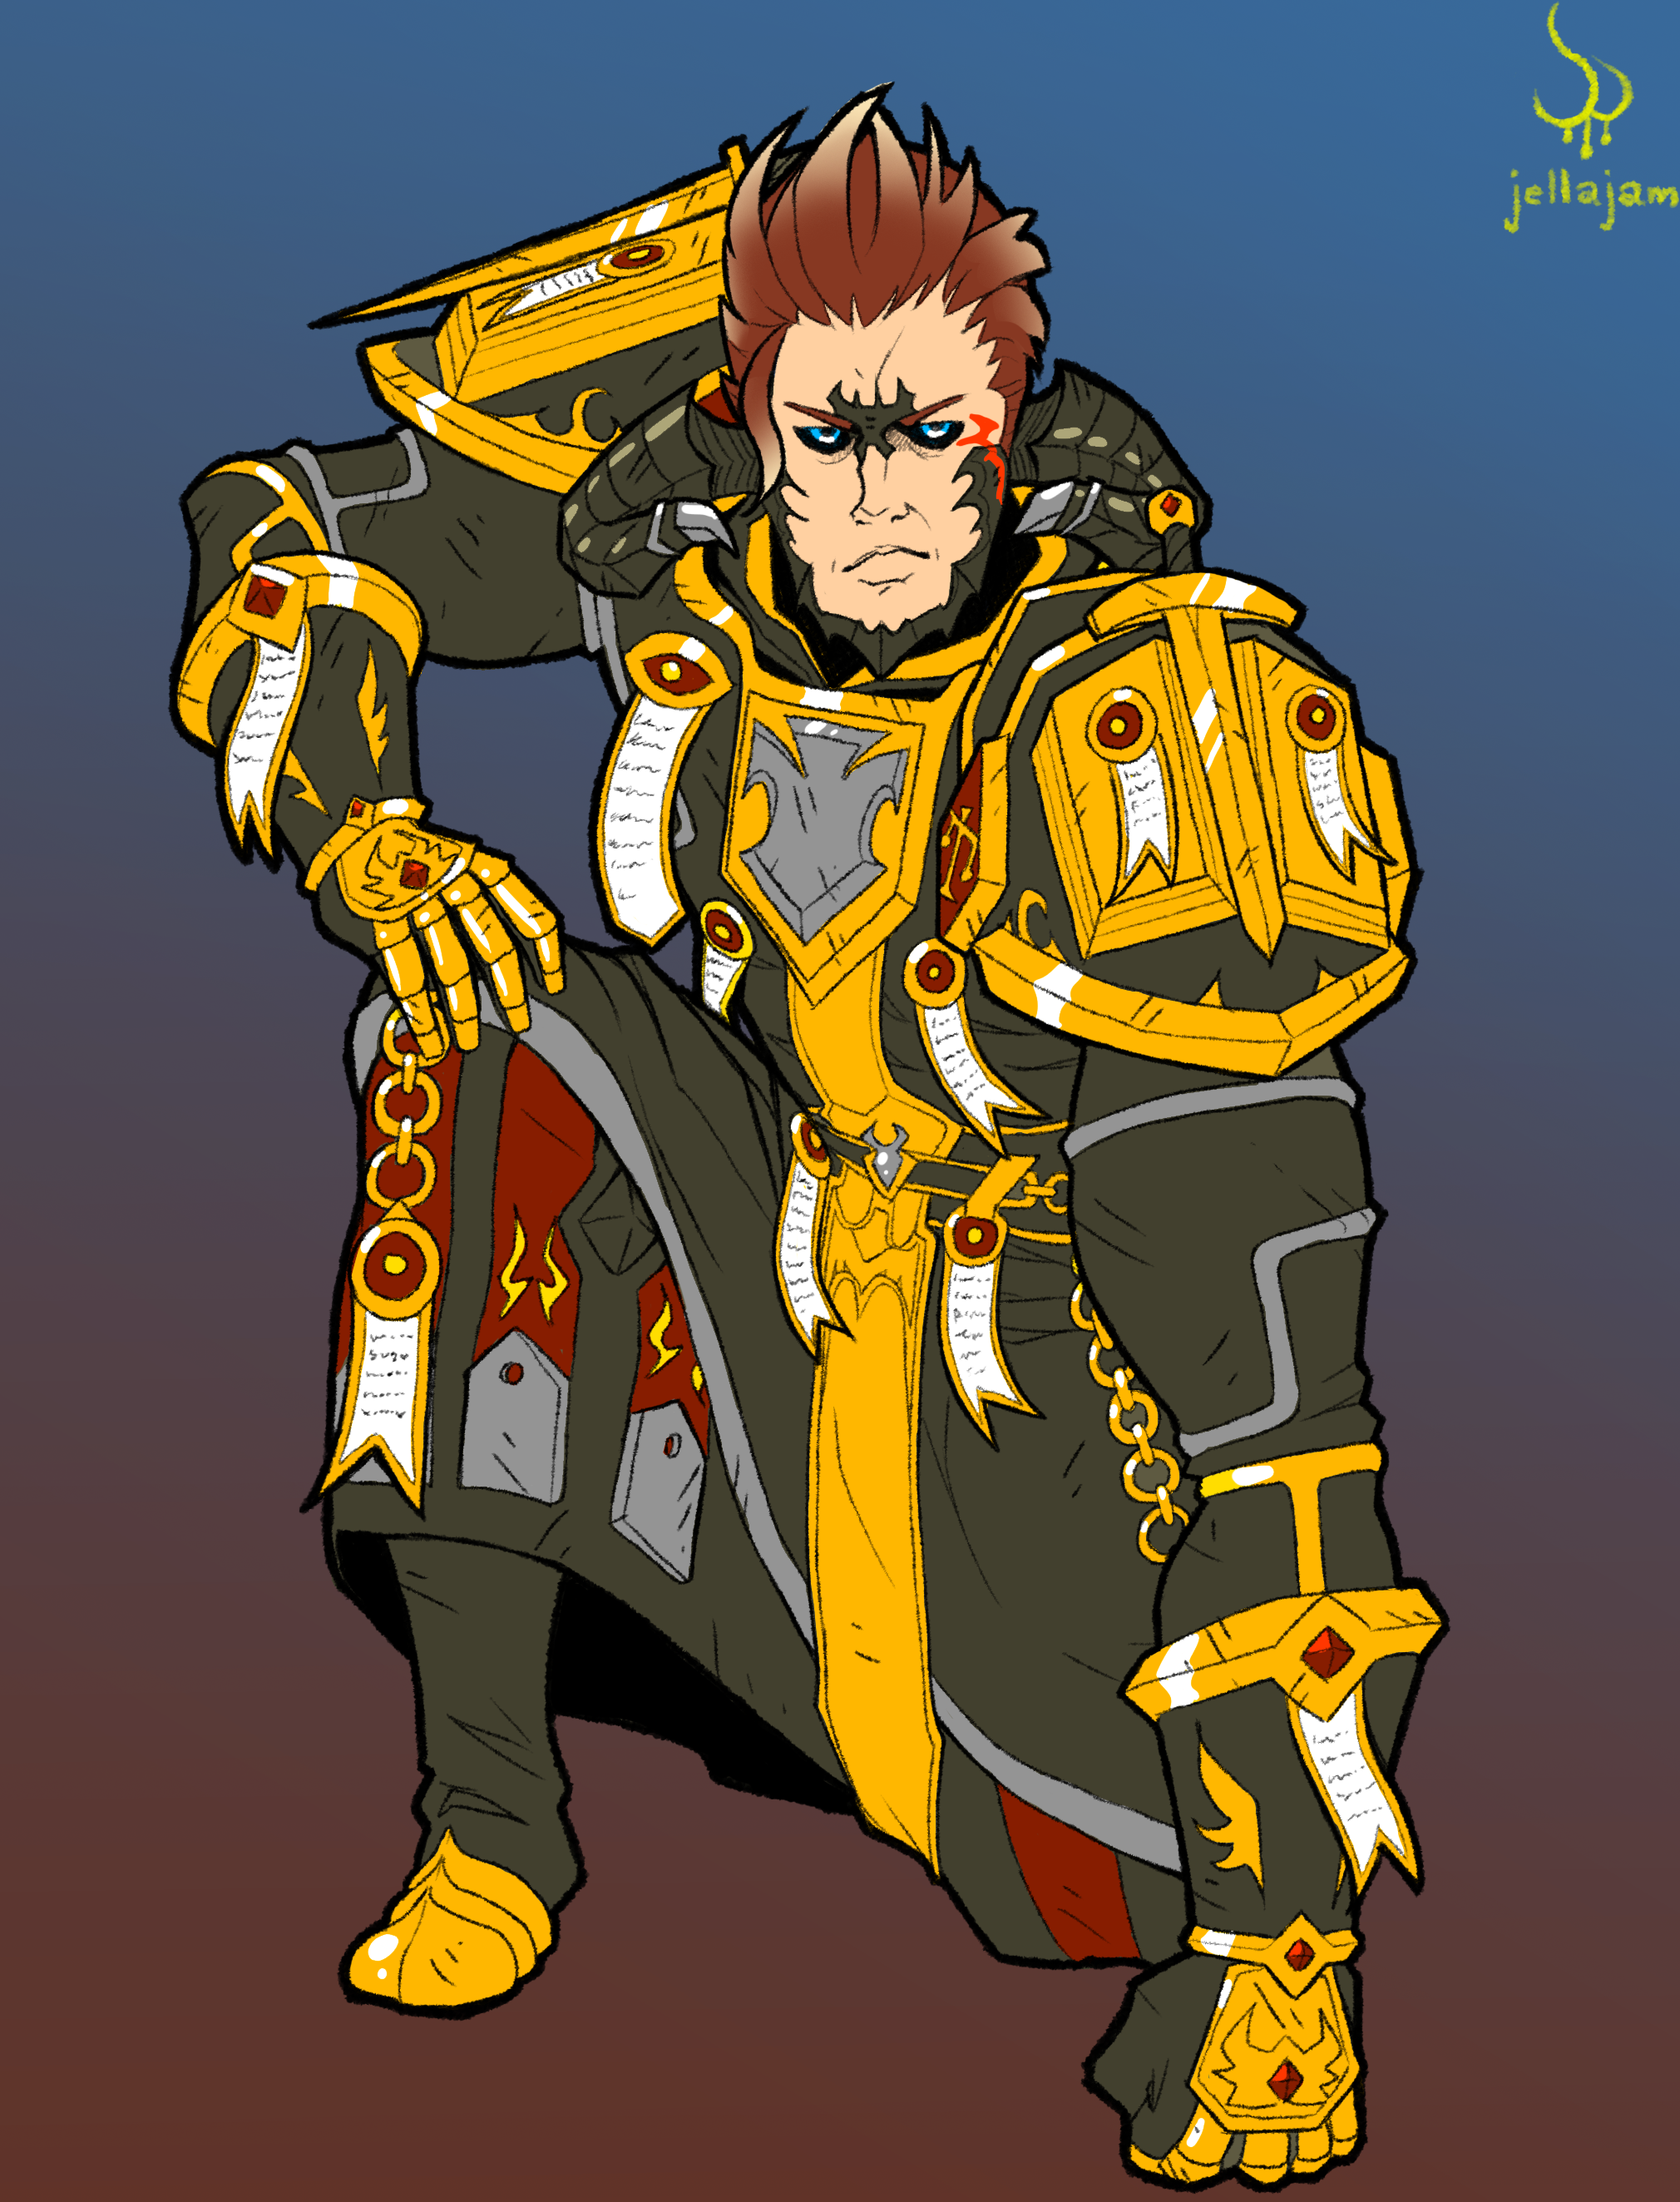 FFXIV x WoW Au Ra Judgement Armor Redwind by Jellajam on Newgrounds